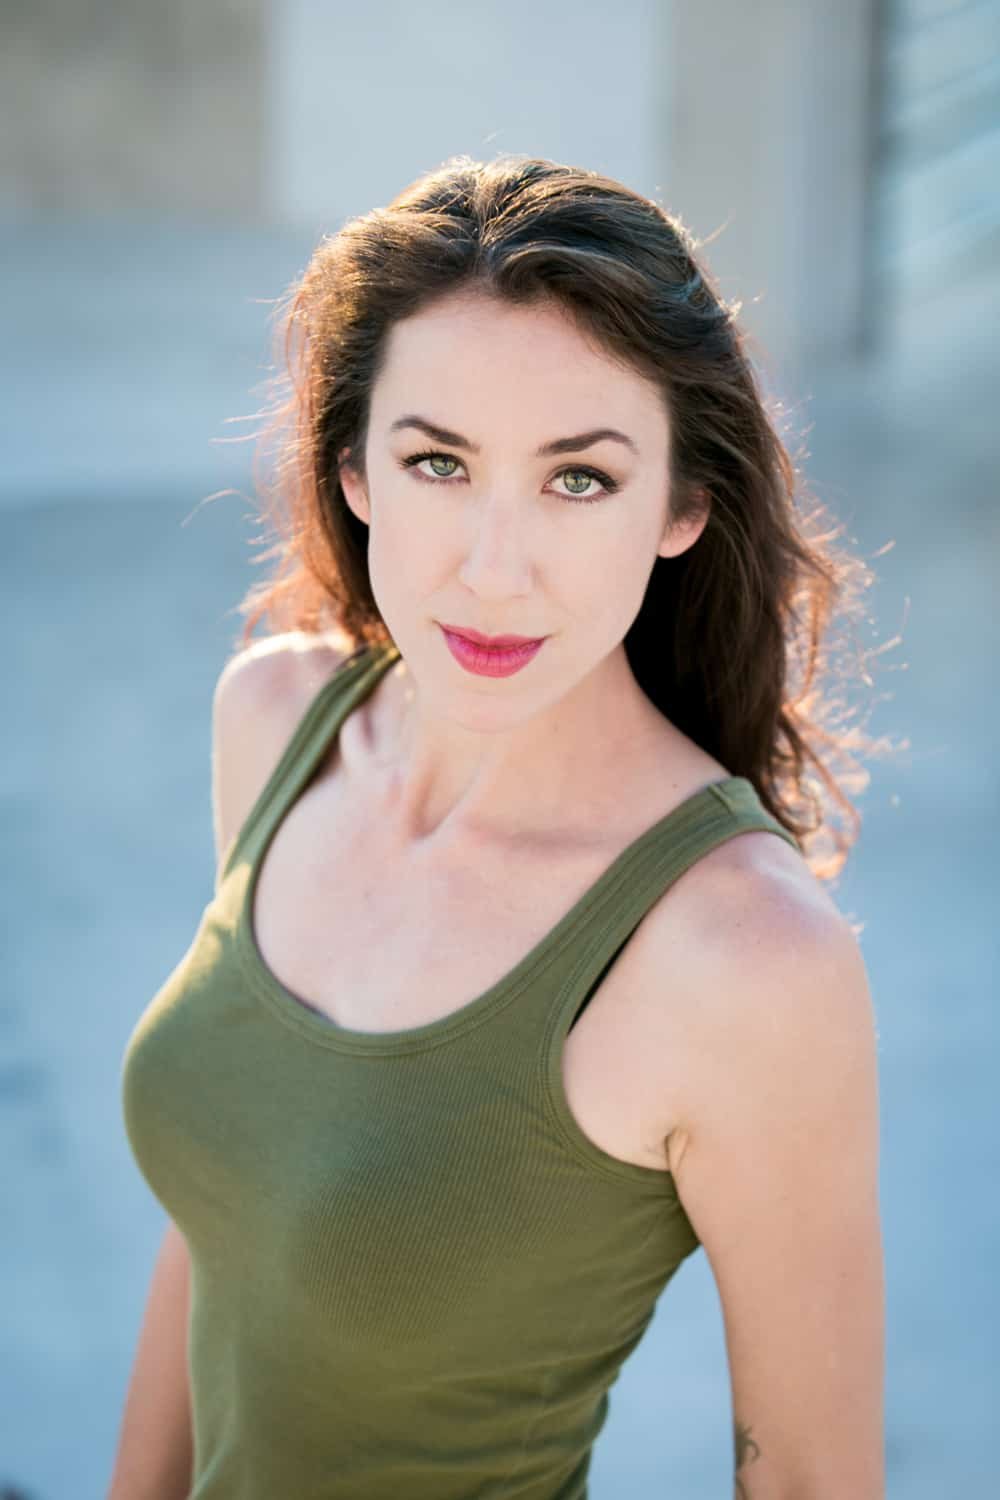 Headshot of model with long dark hair and olive tank top